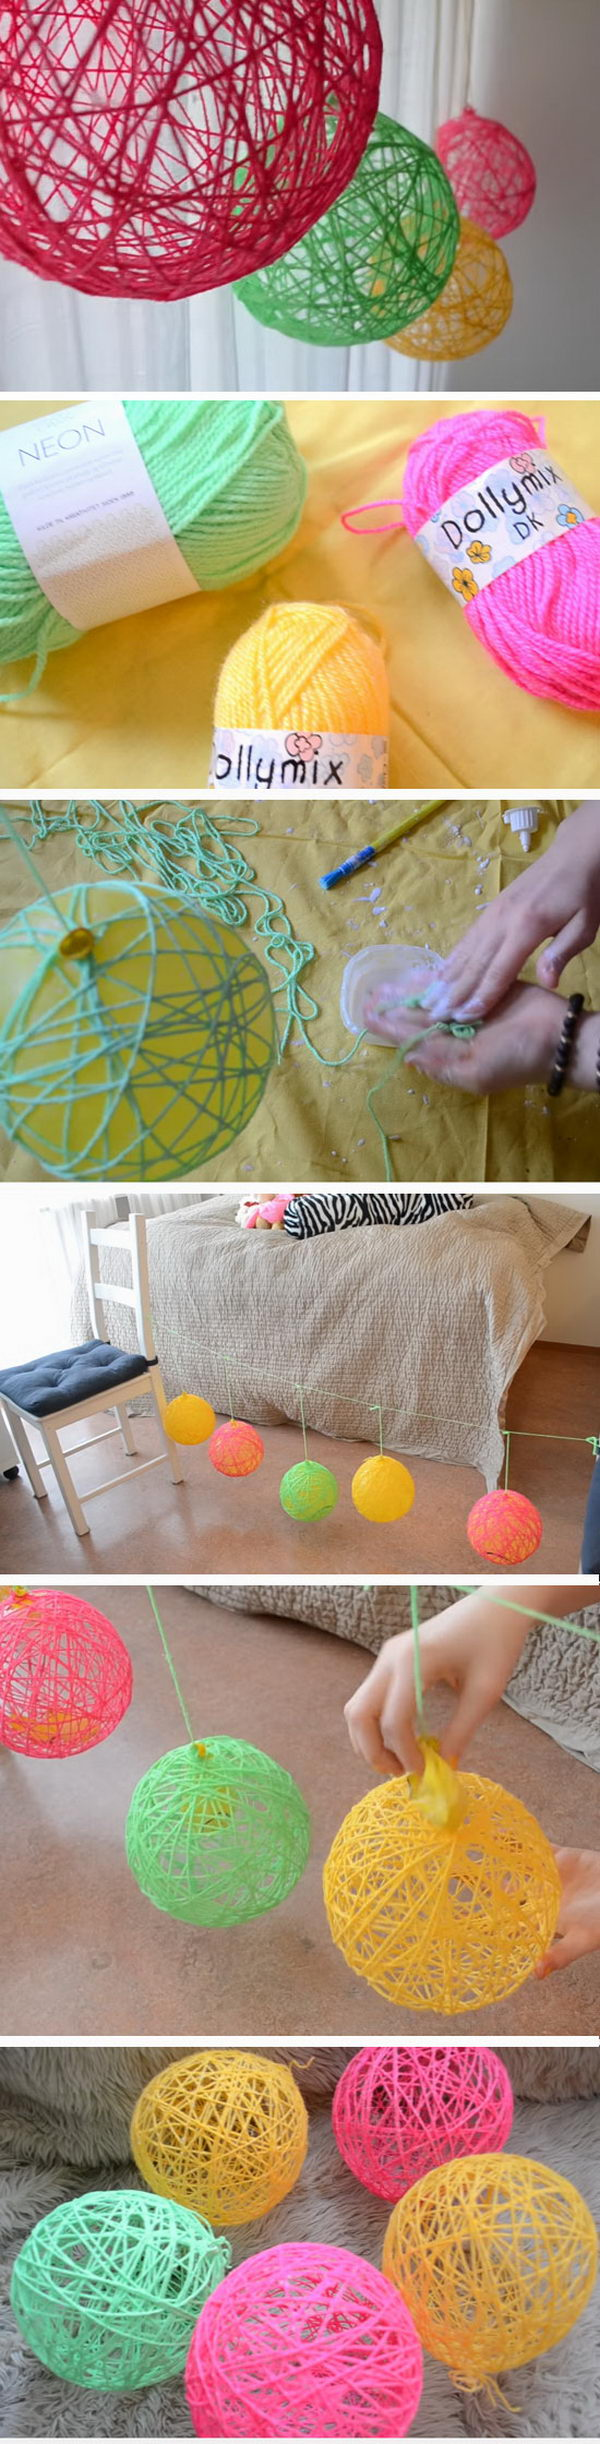 25 fun easy summer diy projects hative for Cool things to make with paper for your room